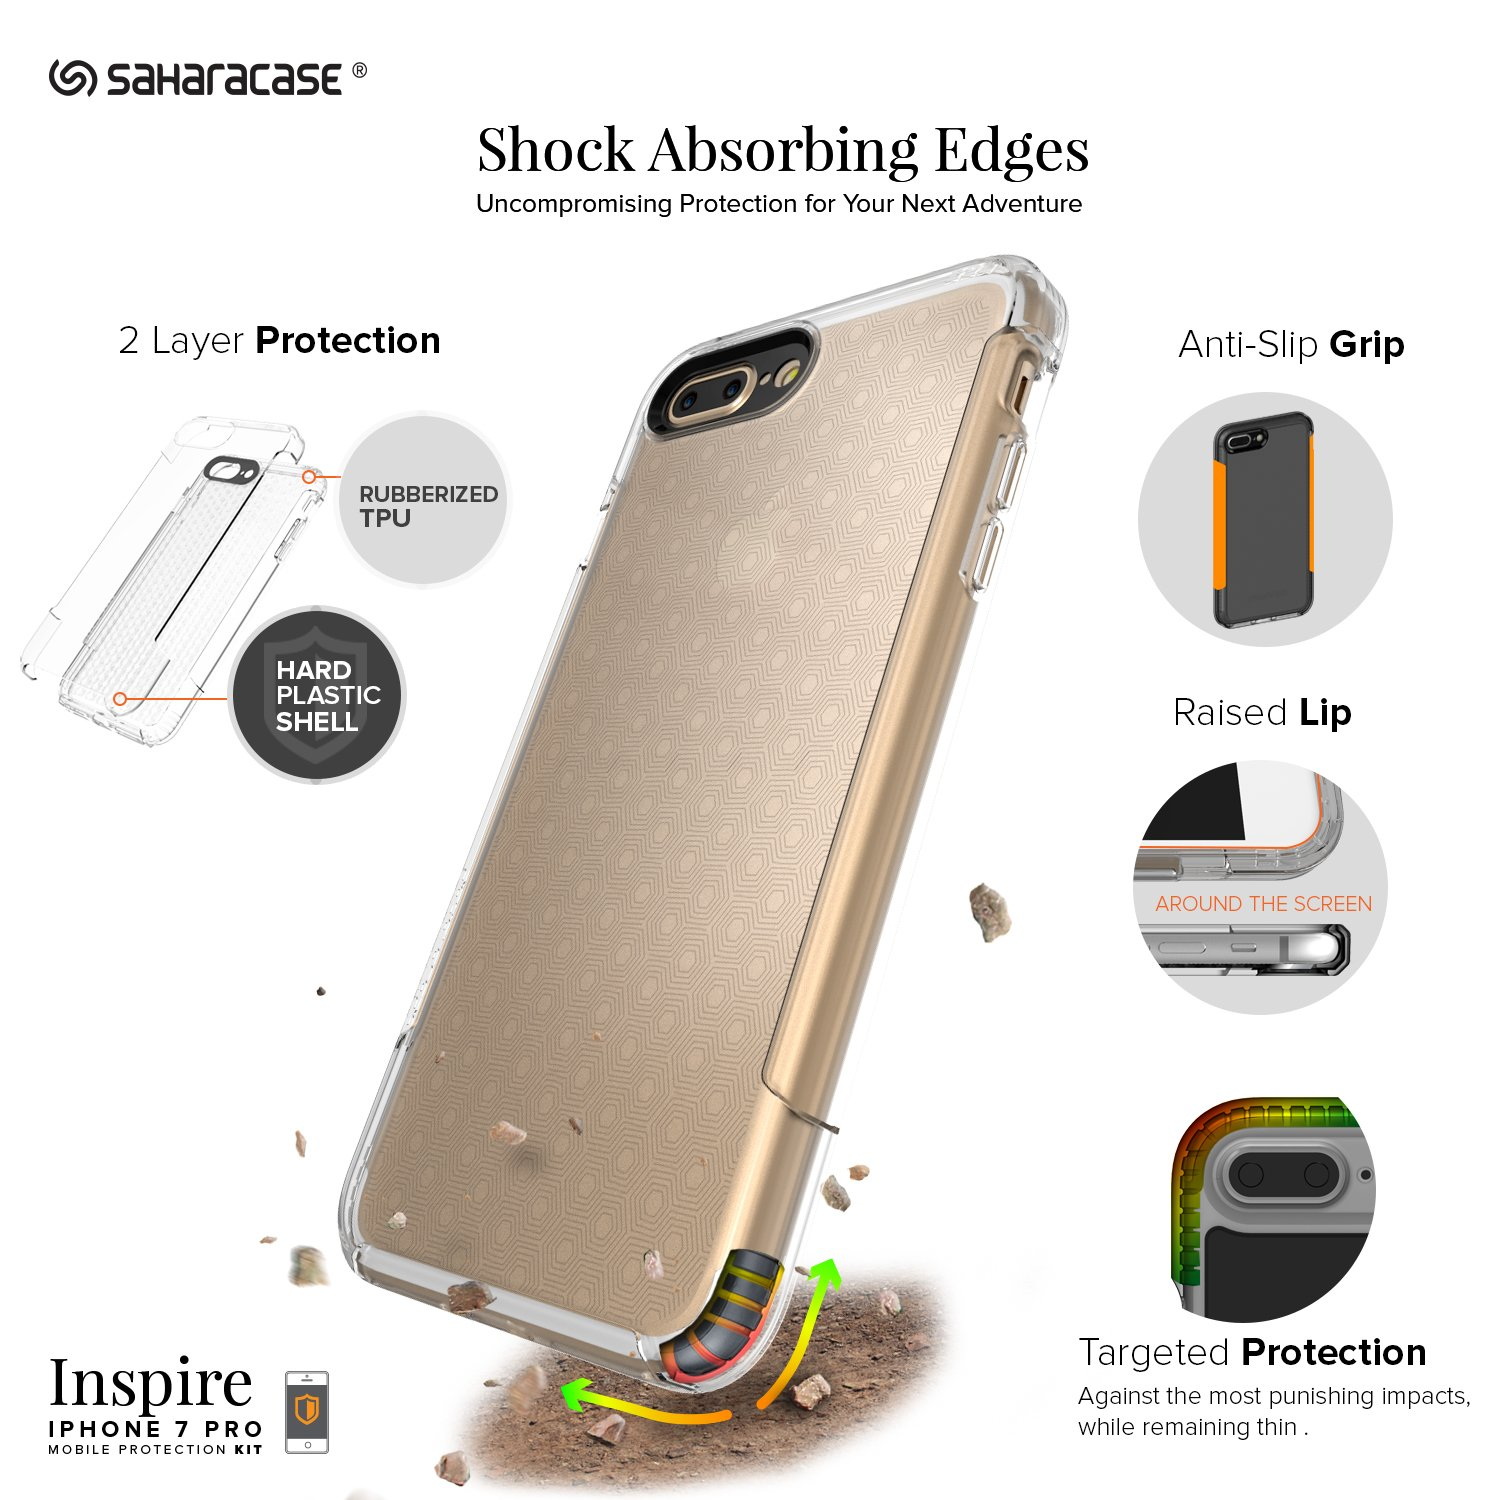 Saharacase iphone 6 6s crystal clear case rose gold edge saharacase - Amazon Com Iphone 8 Plus And 7 Plus Case Saharacase Inspire Protective Kit Bundled With Zerodamage Tempered Glass Screen Protector Rugged Slim Fit